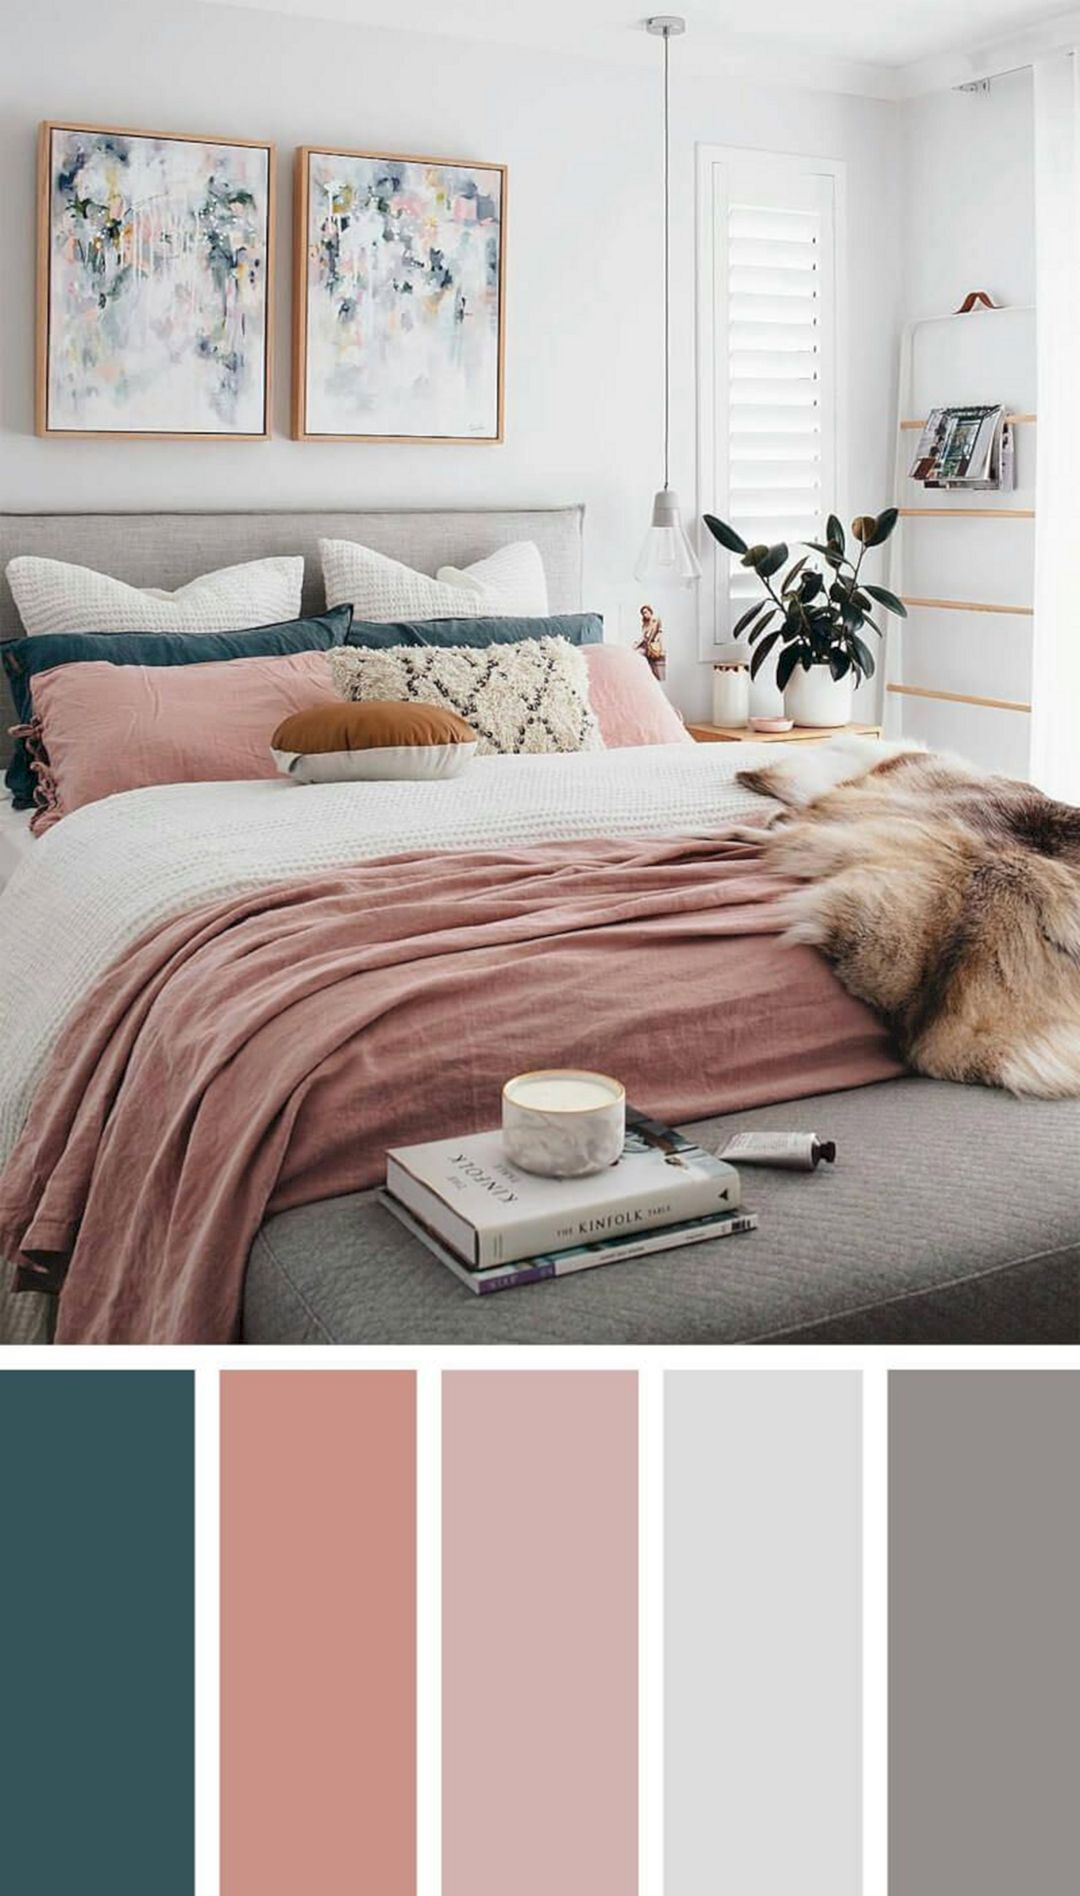 Chic Home Color Schemes And Decorations To Get An Pretty Interior